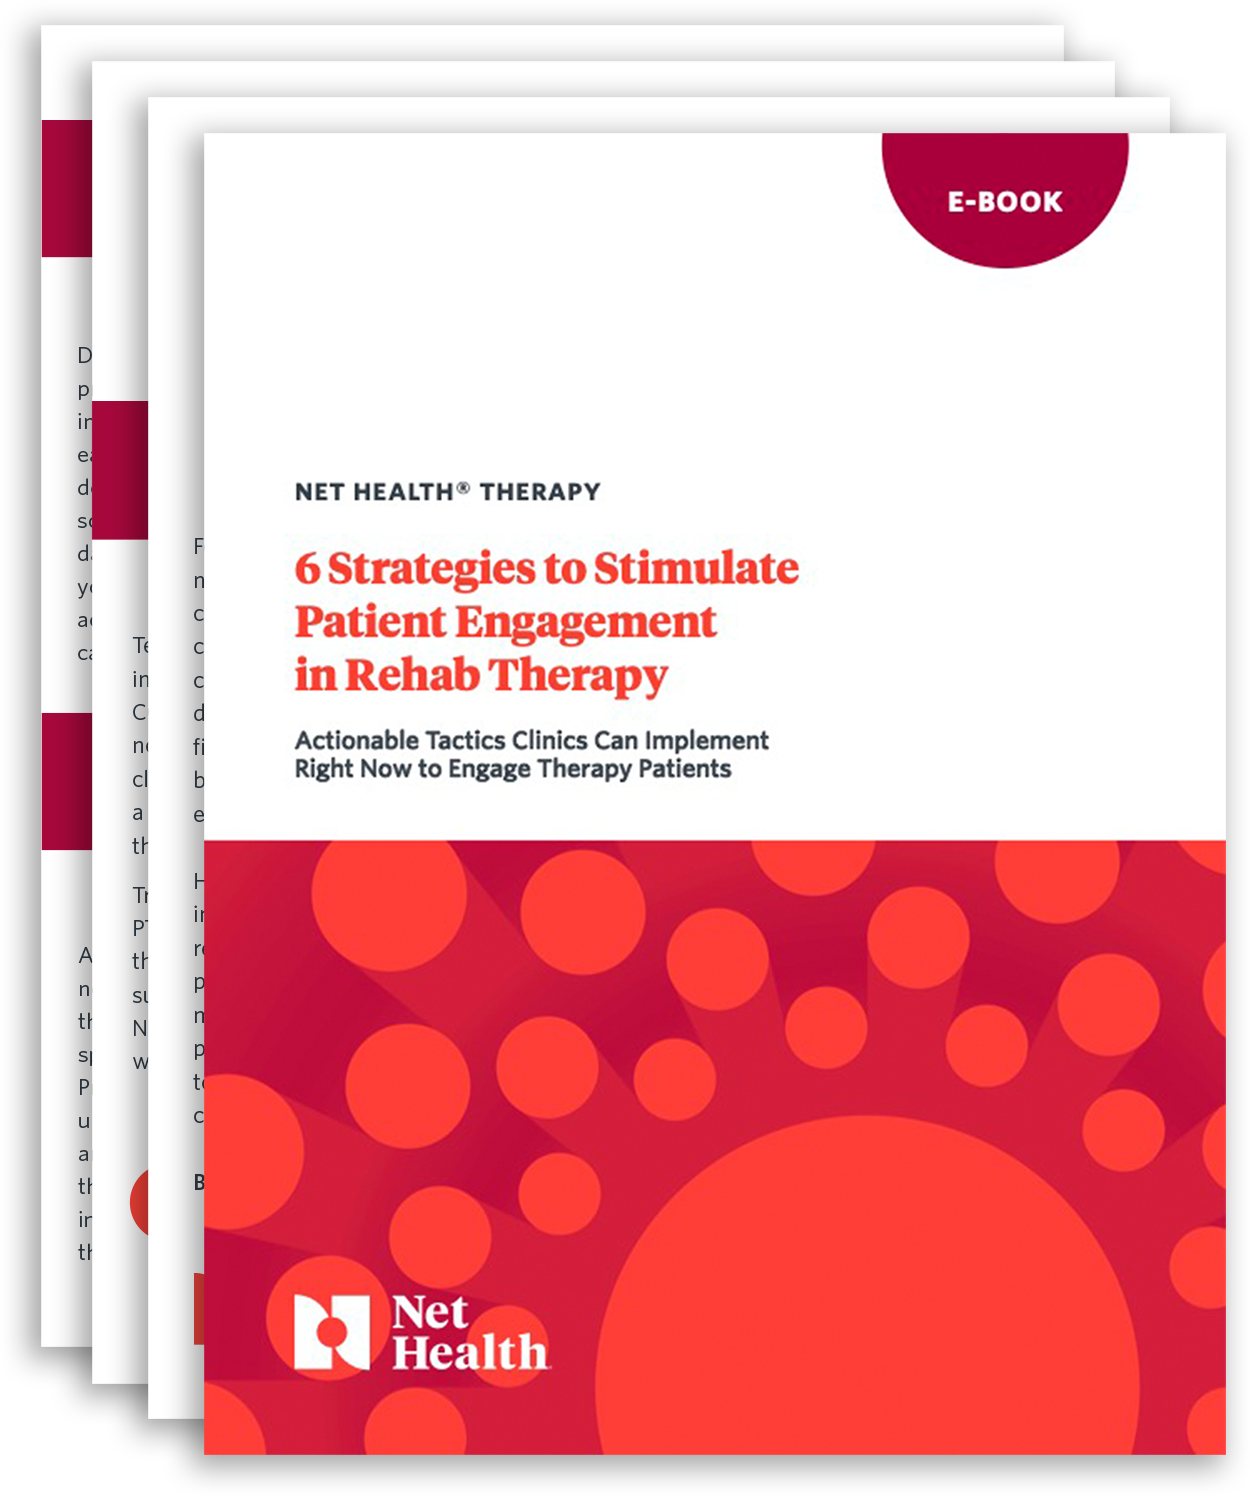 E-Book: 6 Strategies to Stimulate Patient Engagement in Rehab Therapy – Download Now